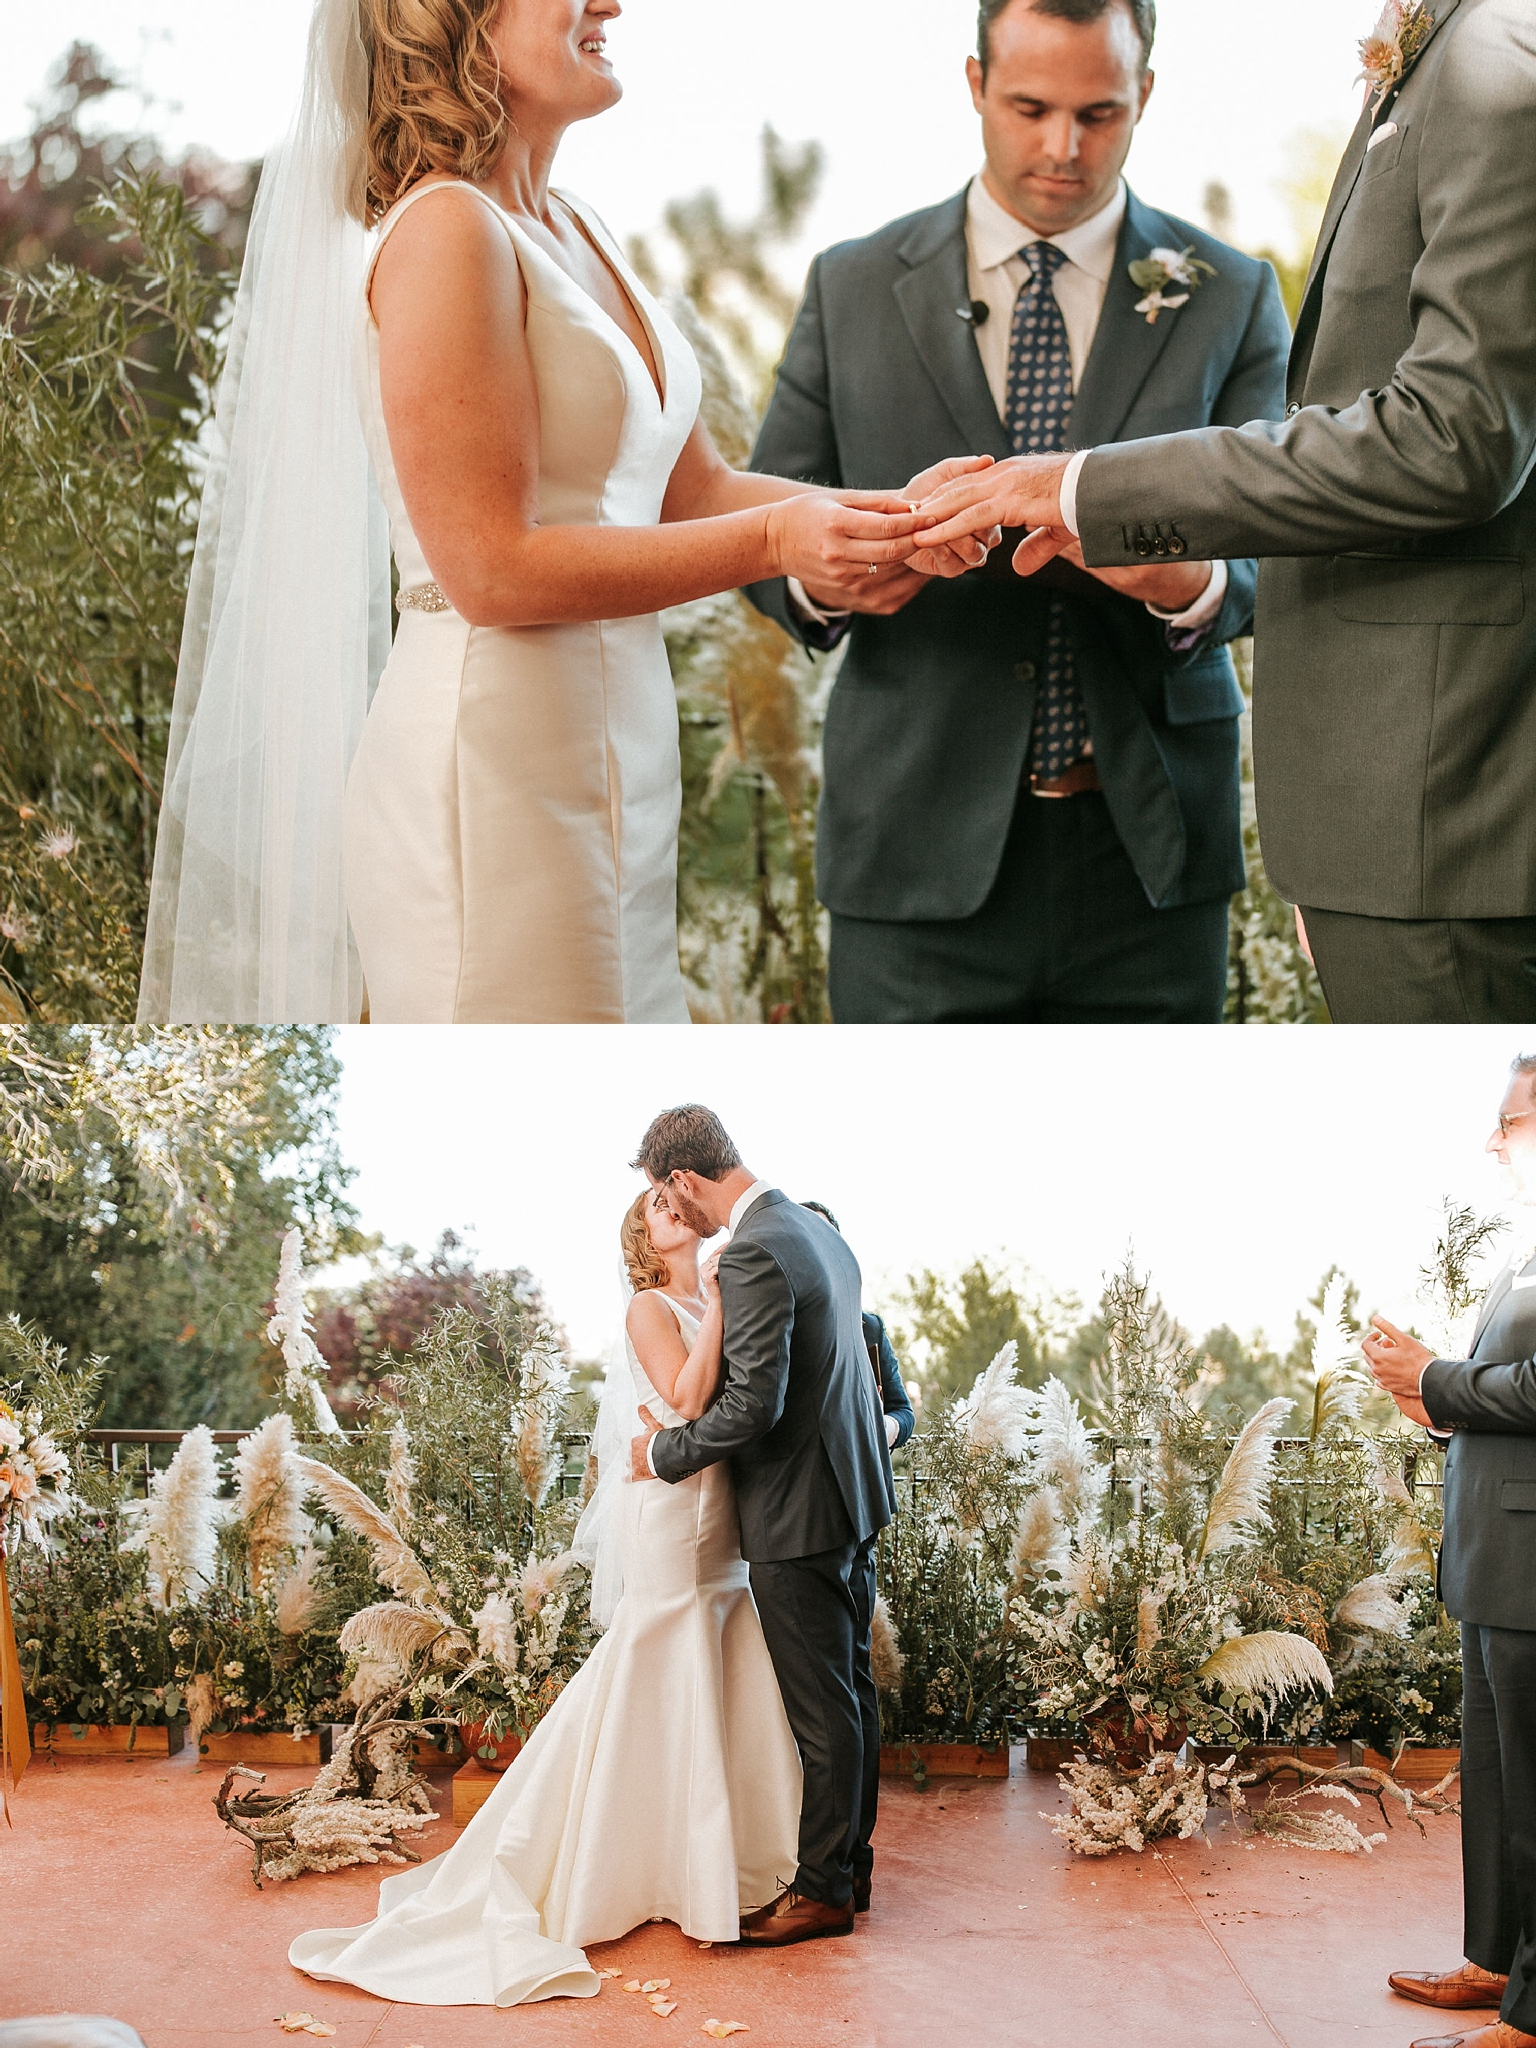 Alicia+lucia+photography+-+albuquerque+wedding+photographer+-+santa+fe+wedding+photography+-+new+mexico+wedding+photographer+-+new+mexico+wedding+-+wedding+photographer+-+wedding+photographer+team_0141.jpg